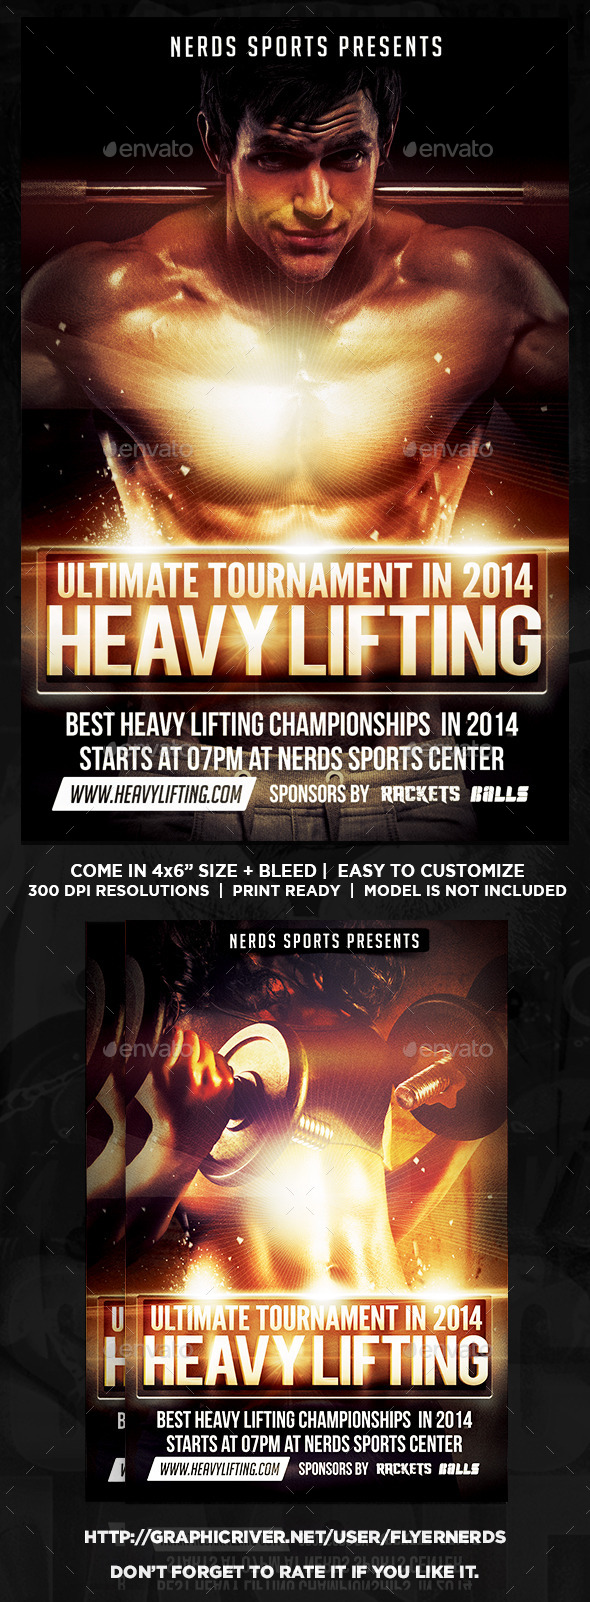 GraphicRiver Heavy Lifting Championships Flyer 9068497